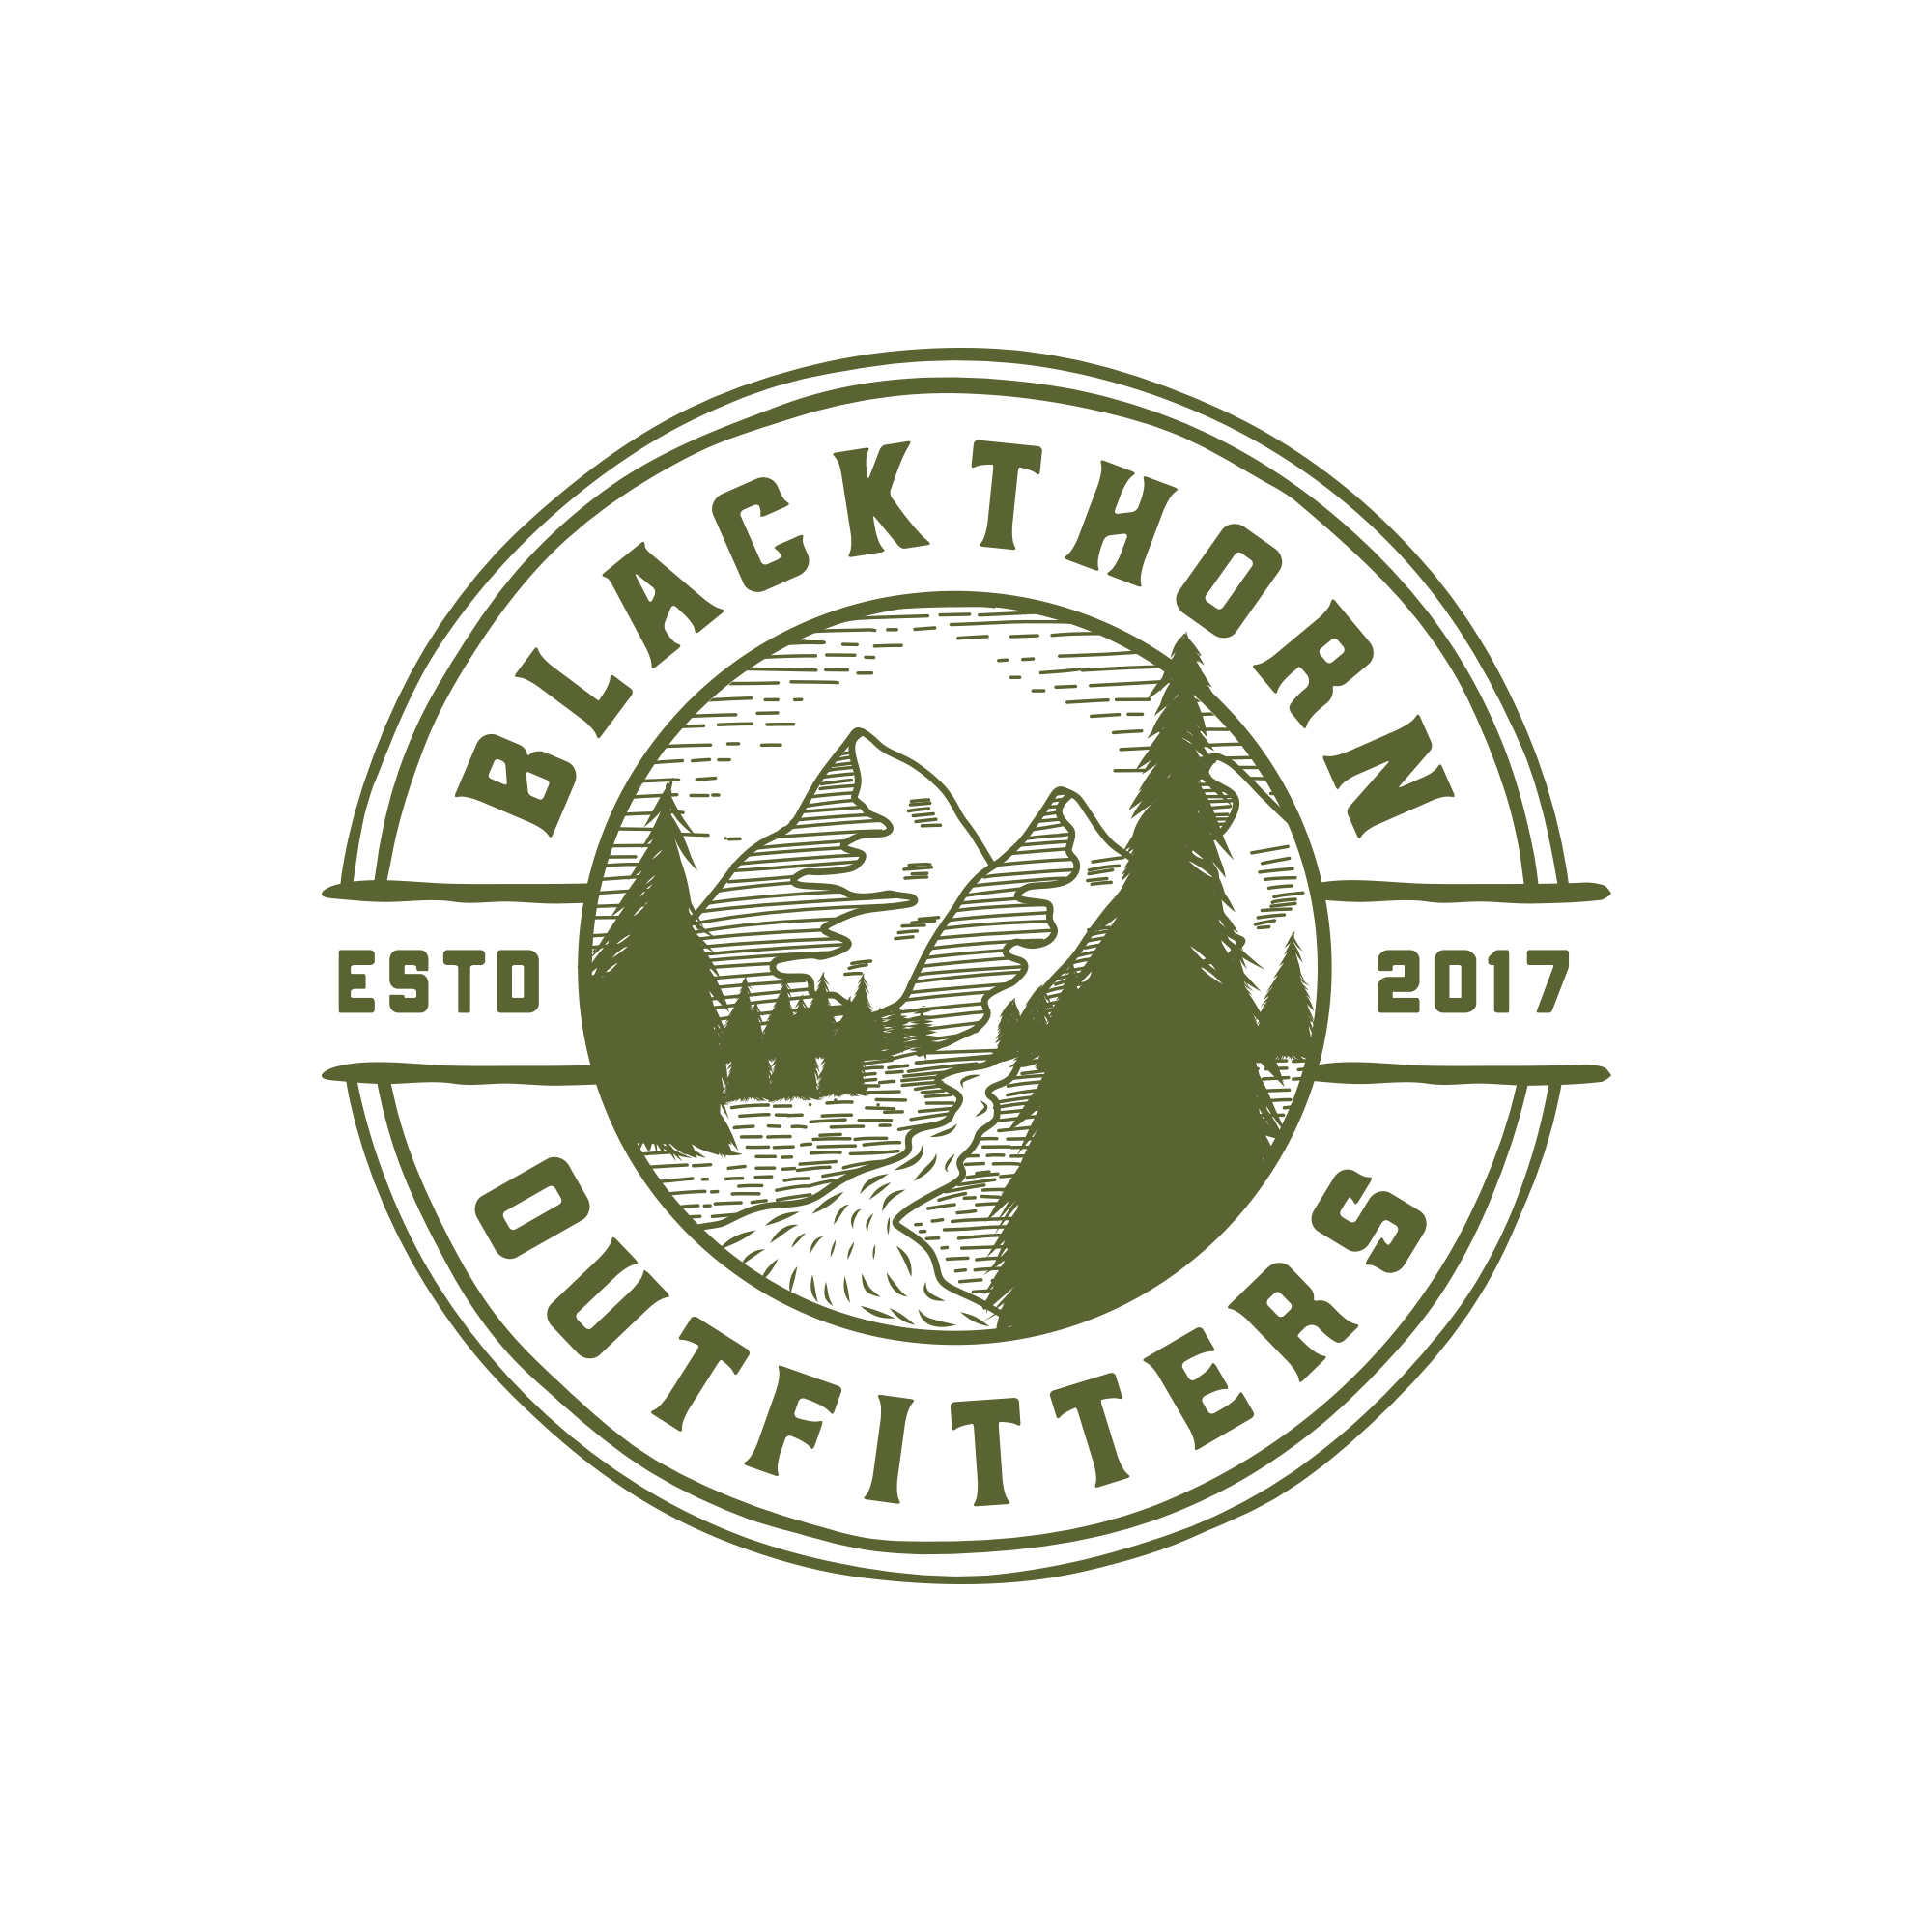 Create a vintage woodsman logo for Blackthorn Outfitters